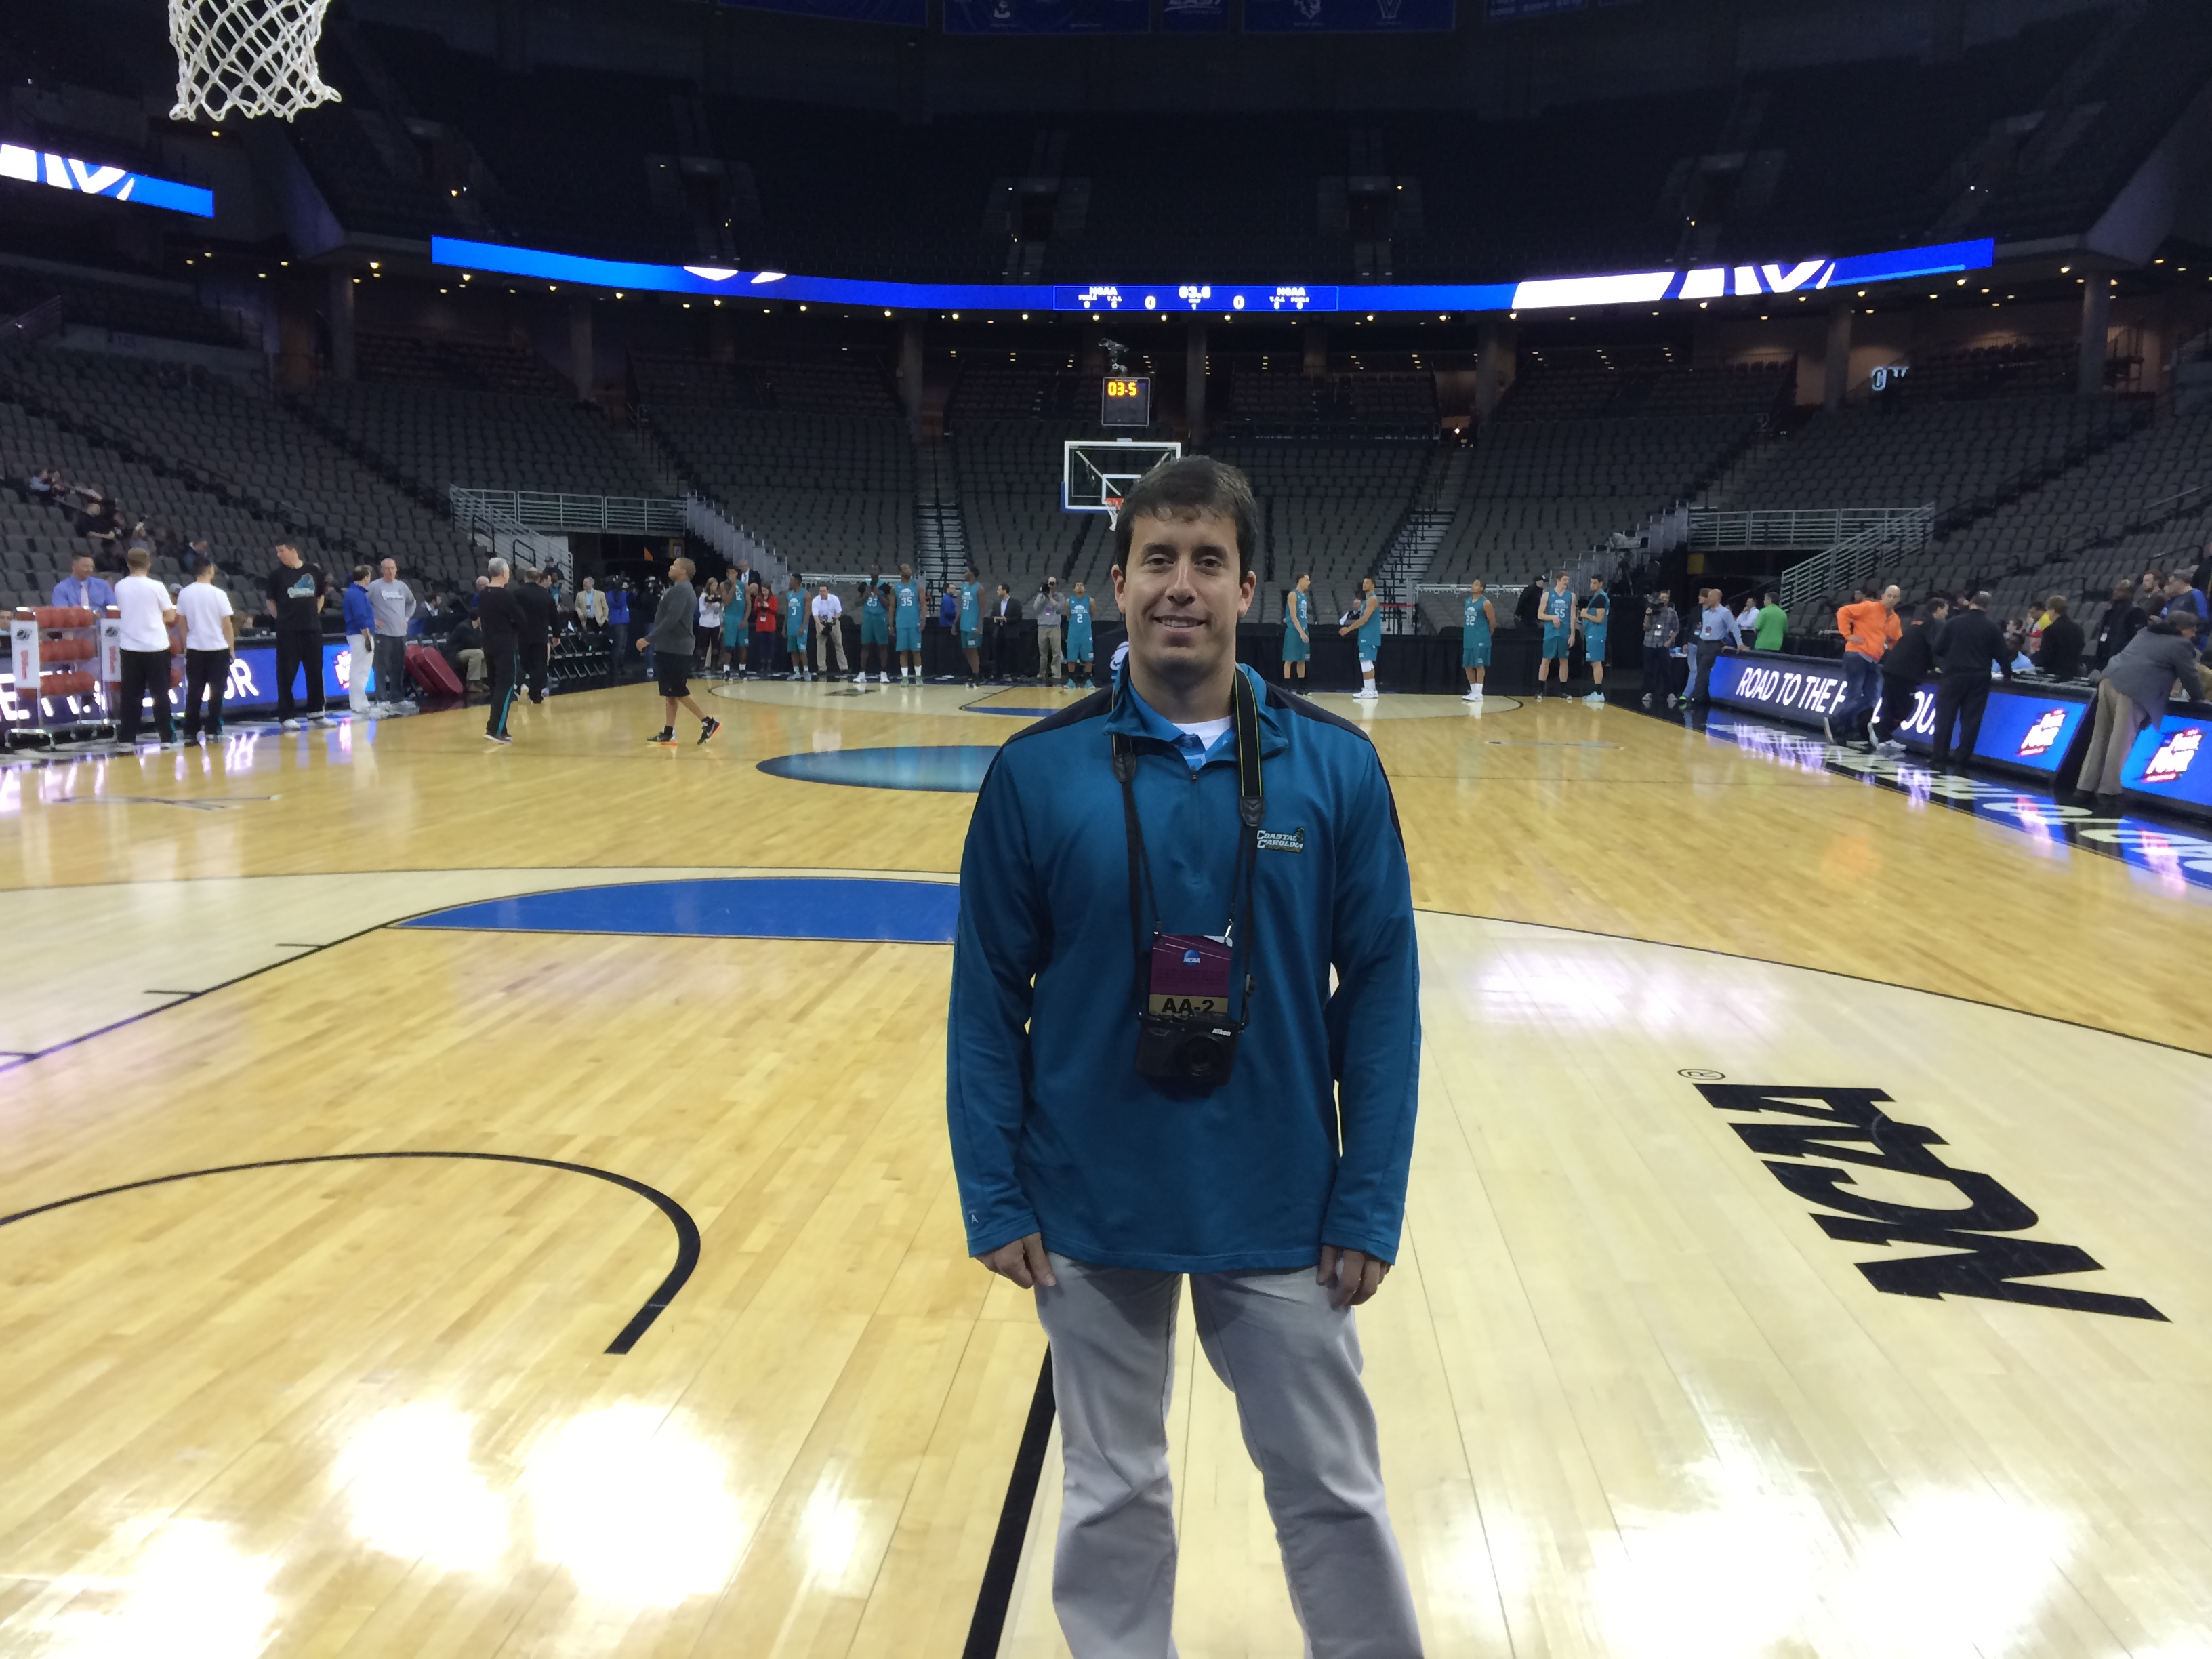 This was me at the shoot around at the CenturyLink Center on Thursday night.